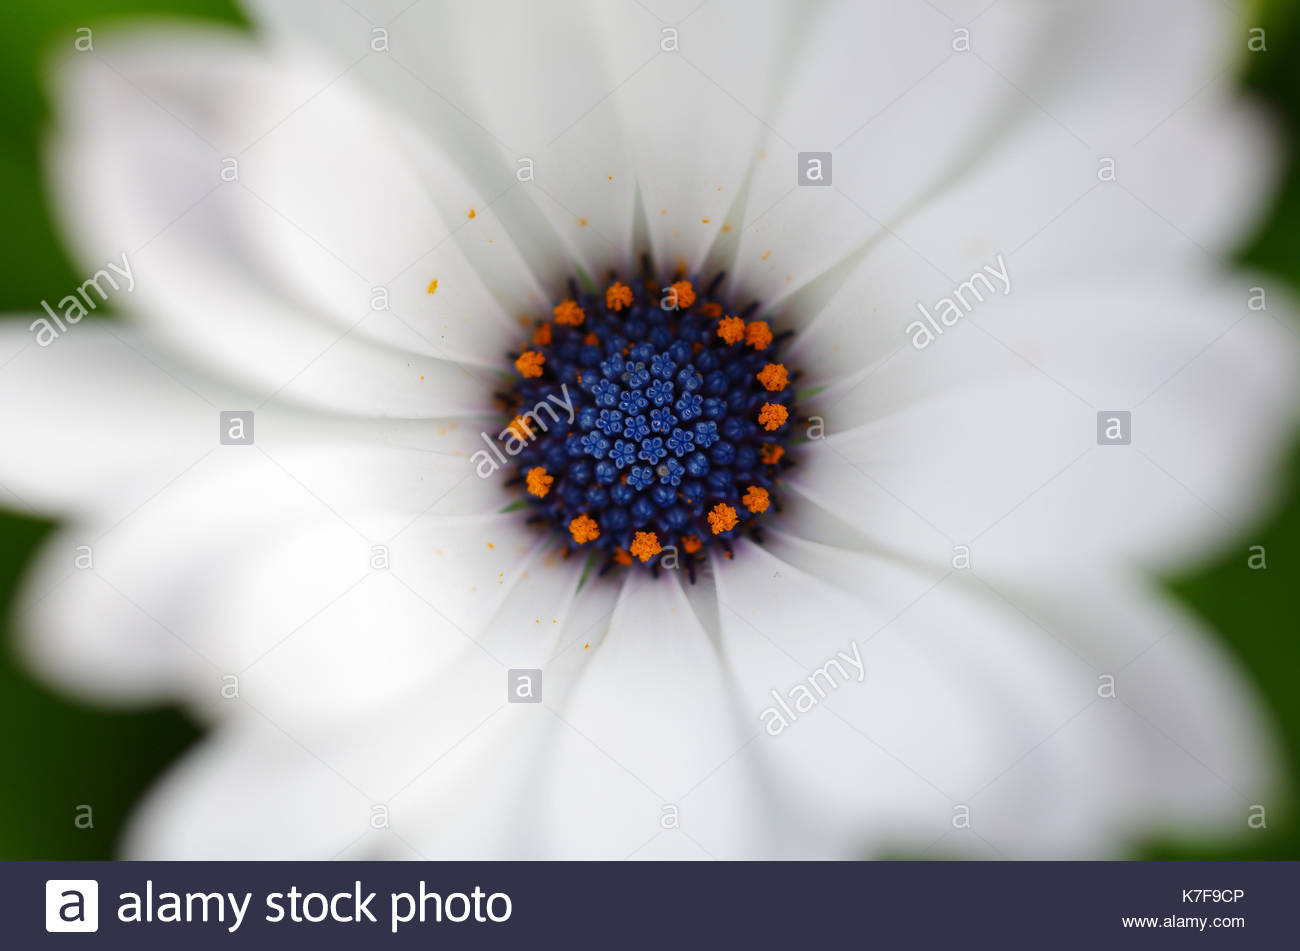 Center of a flower looks like a small universe stock photo center of a flower looks like a small universe izmirmasajfo